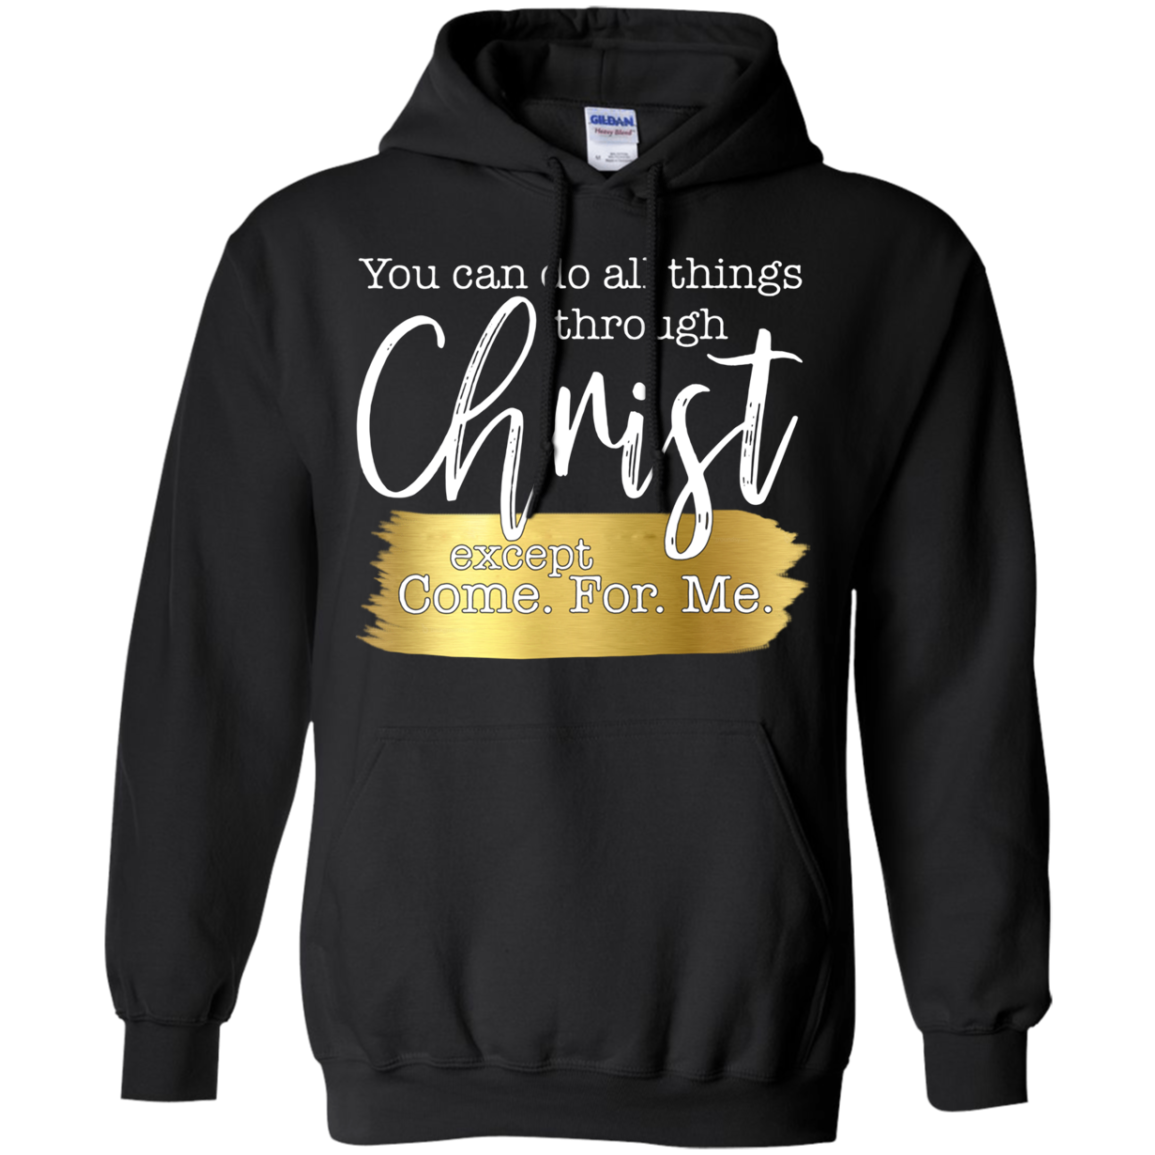 Get Here You Can Do All Things Through Christ Except Come For Me Tula Store Shirts